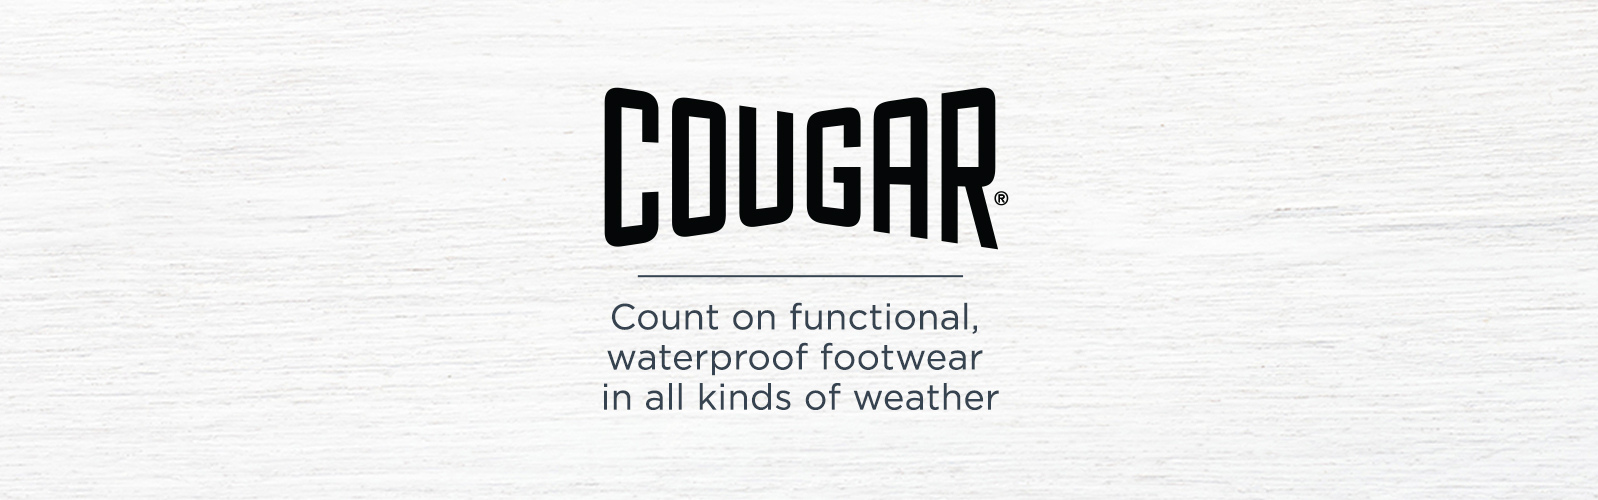 Cougar -- Count on functional, waterproof footwear in all kinds of weather